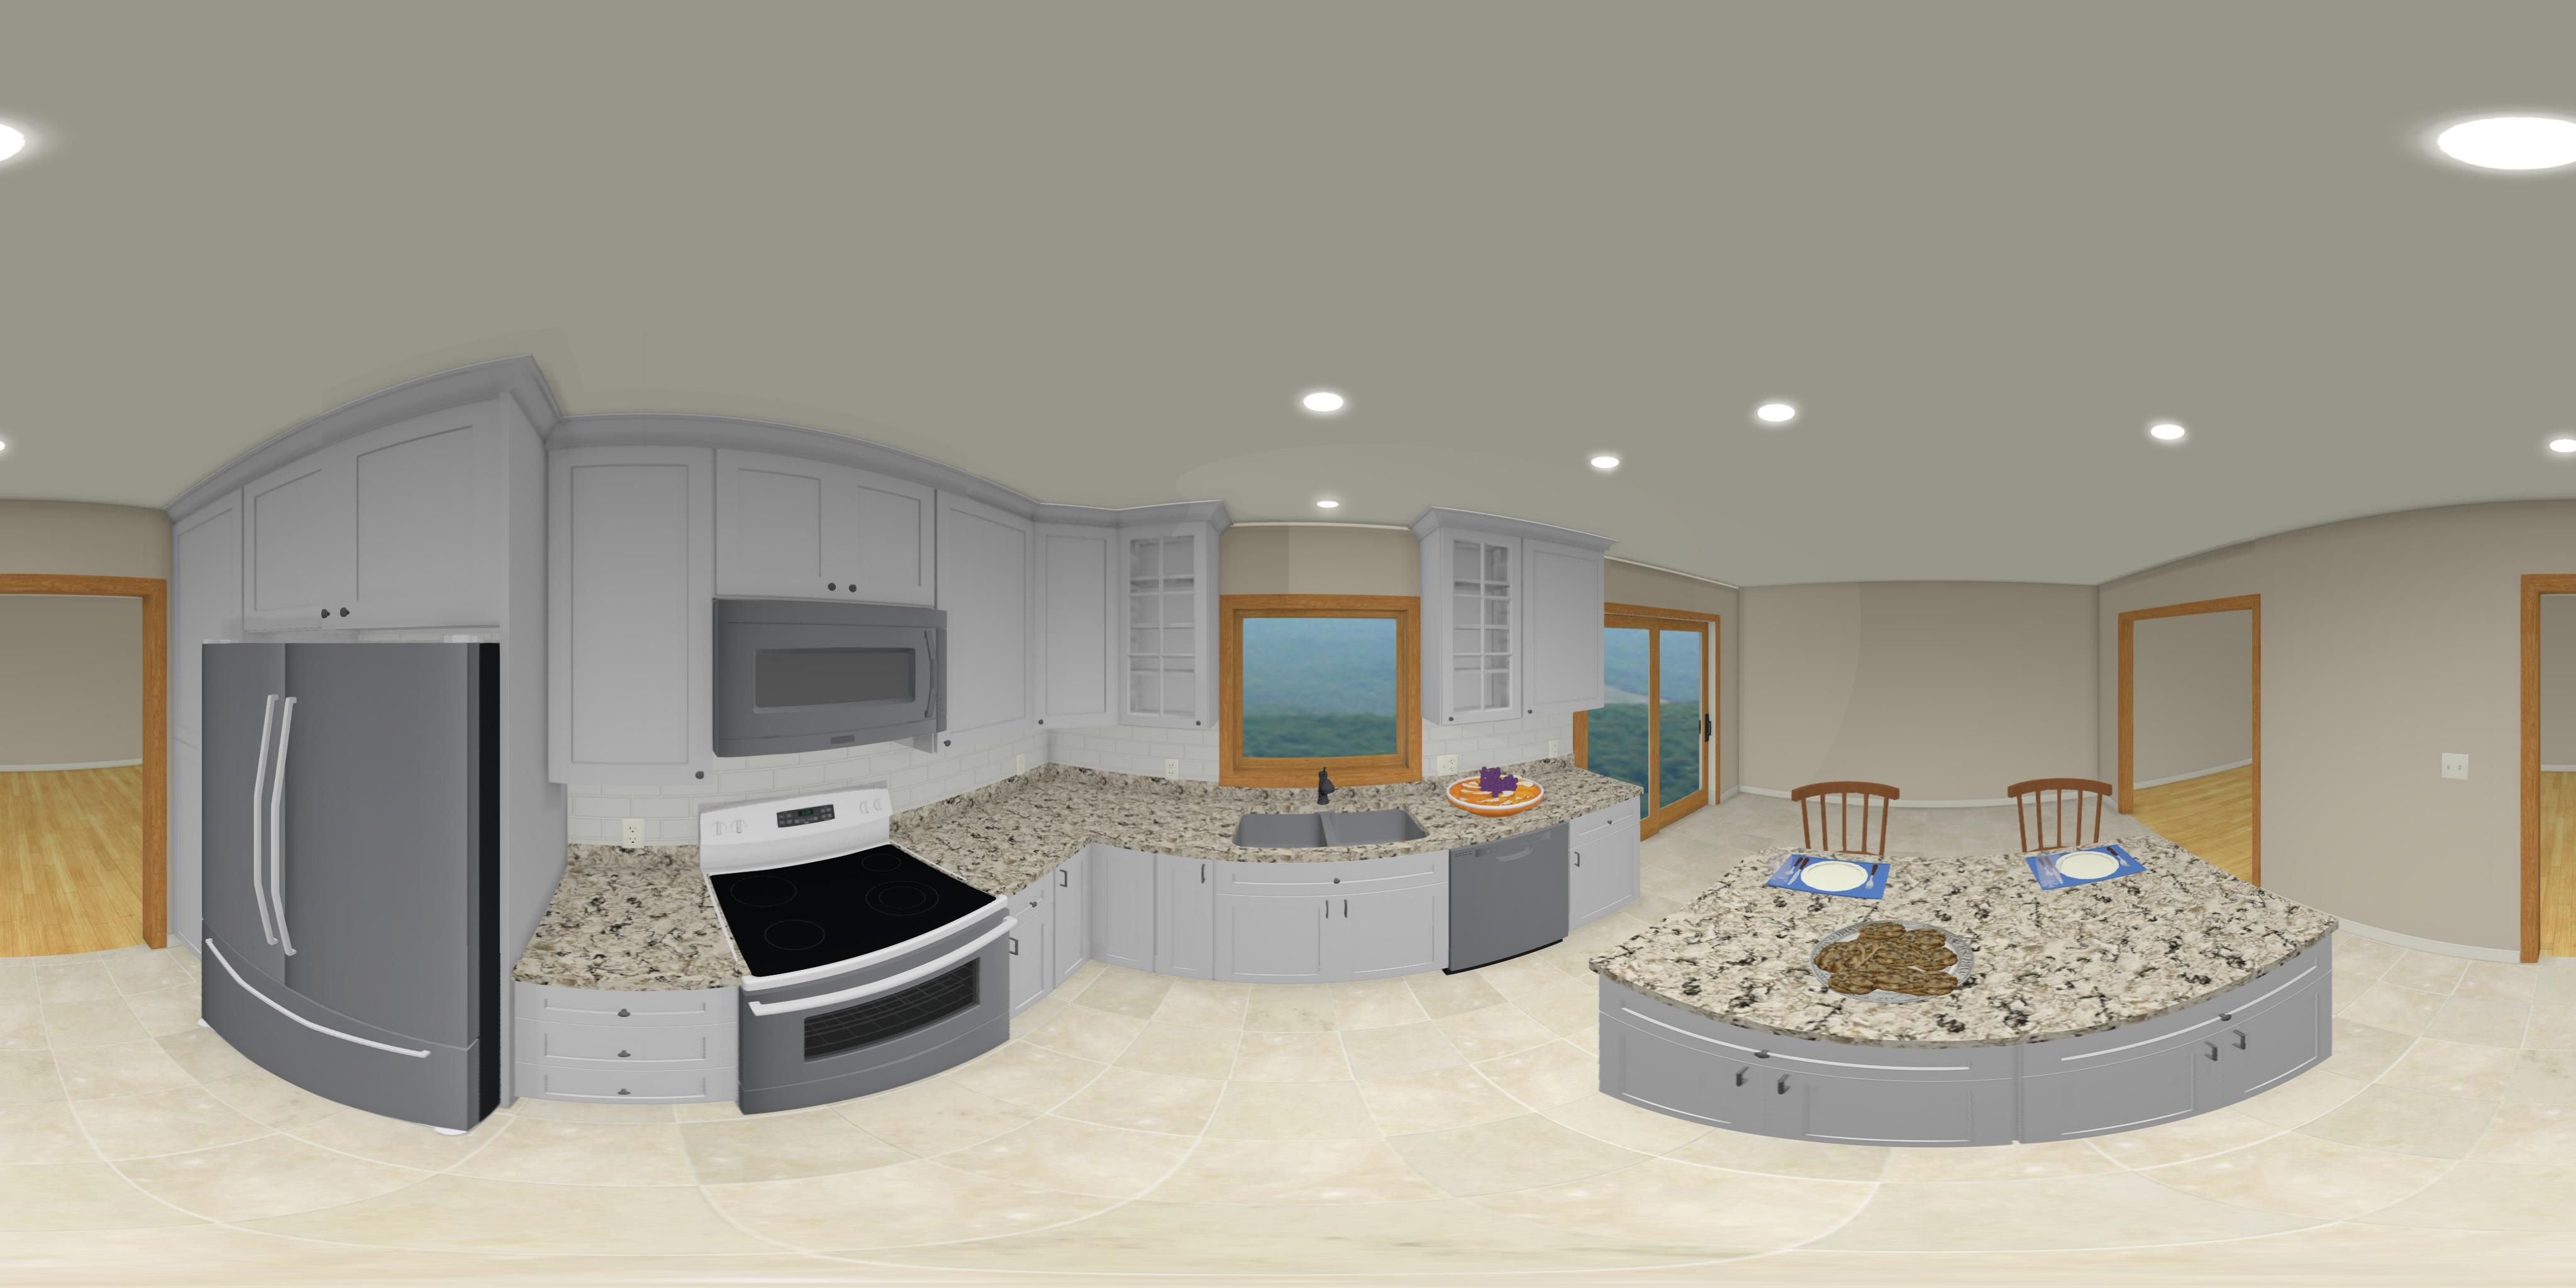 For Most Homeowners It Can Be A Challenge To Visualize How The Cabinets Flooring Appliances And Countertops Kitchen Cabinet Design Kitchen Remodel Remodel